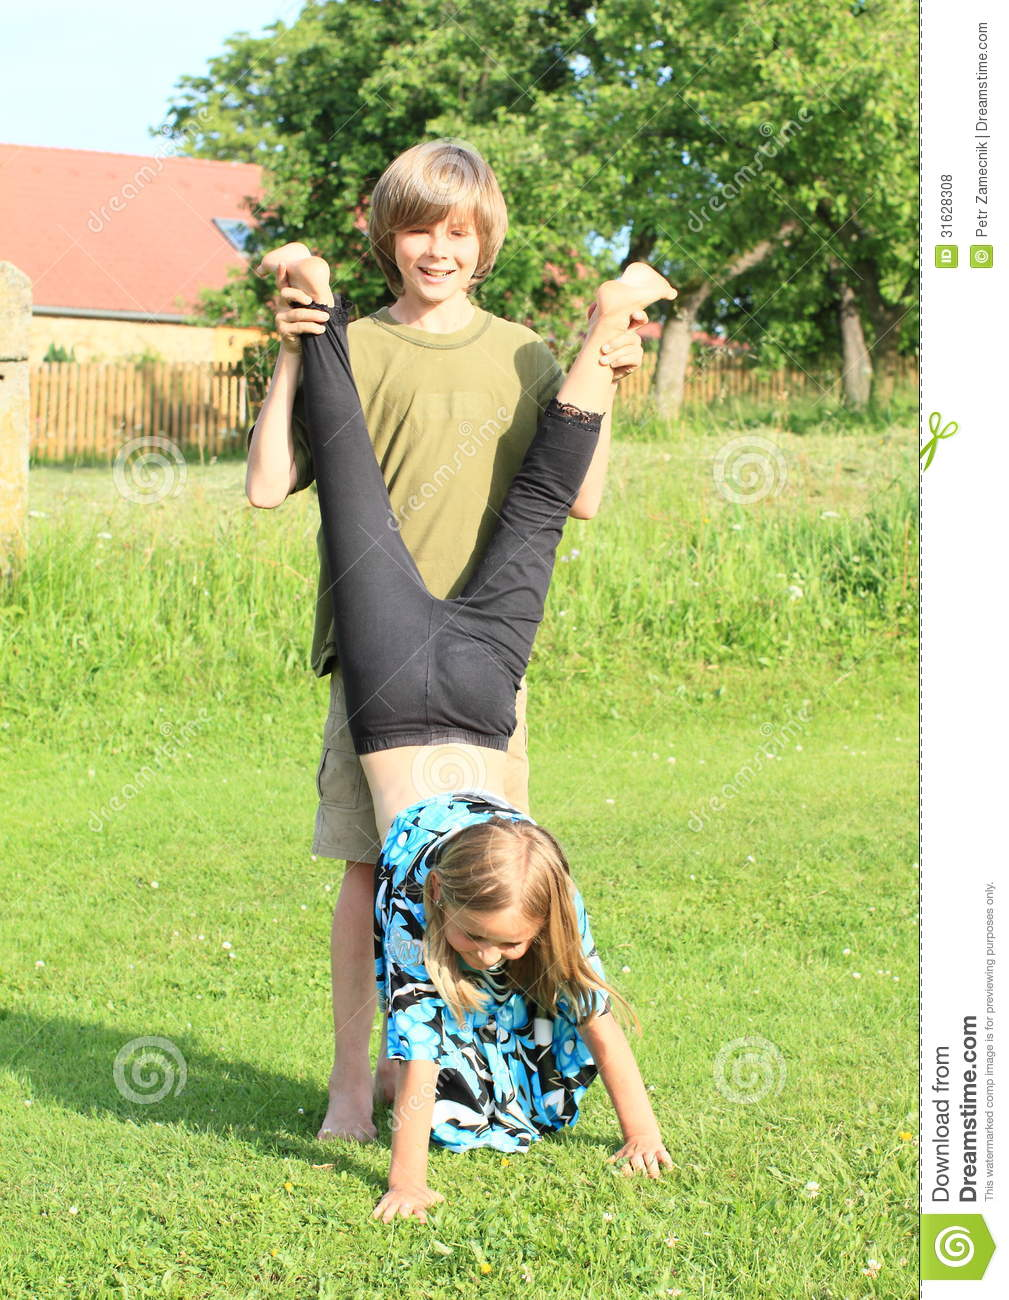 Girl Training Handstand Stock Photo. Image Of Smiling